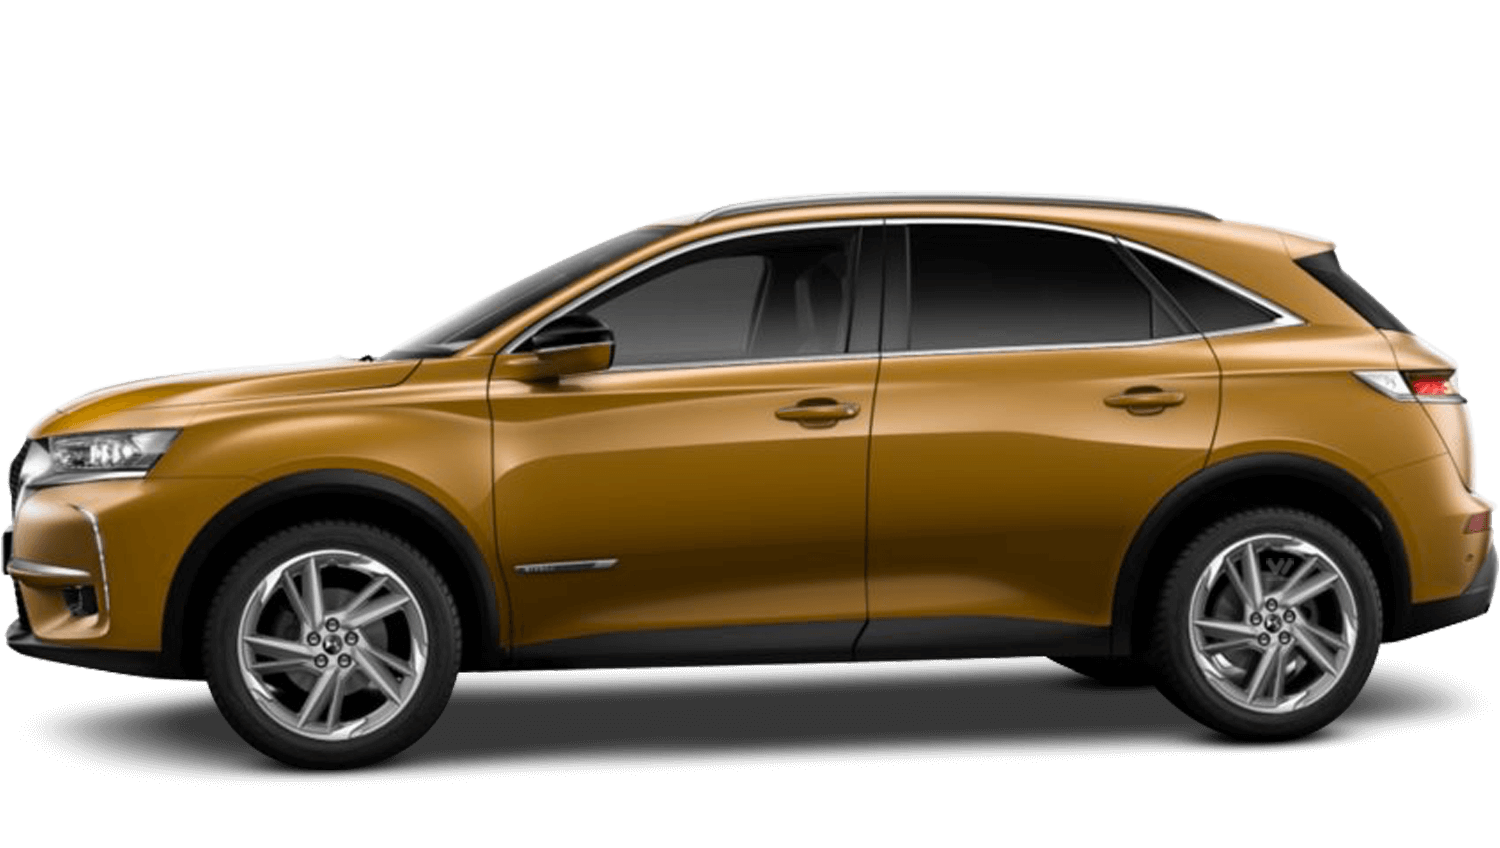 Byzantine Gold (Pearl) DS DS 7 Crossback